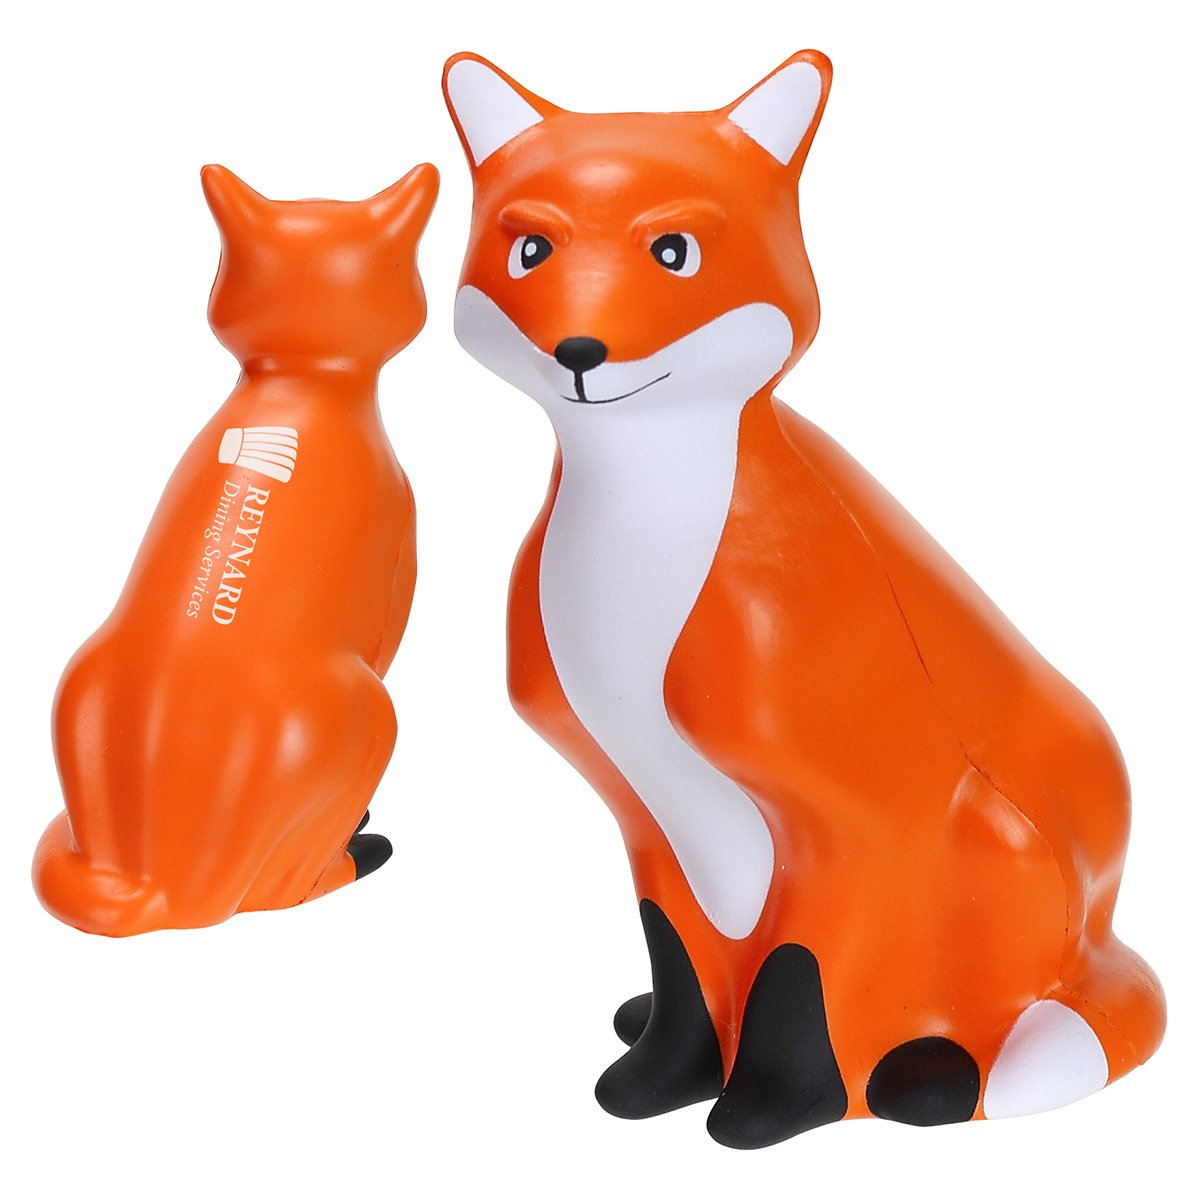 Fox Stress Reliever, LNA-FX19, 1 Colour Imprint